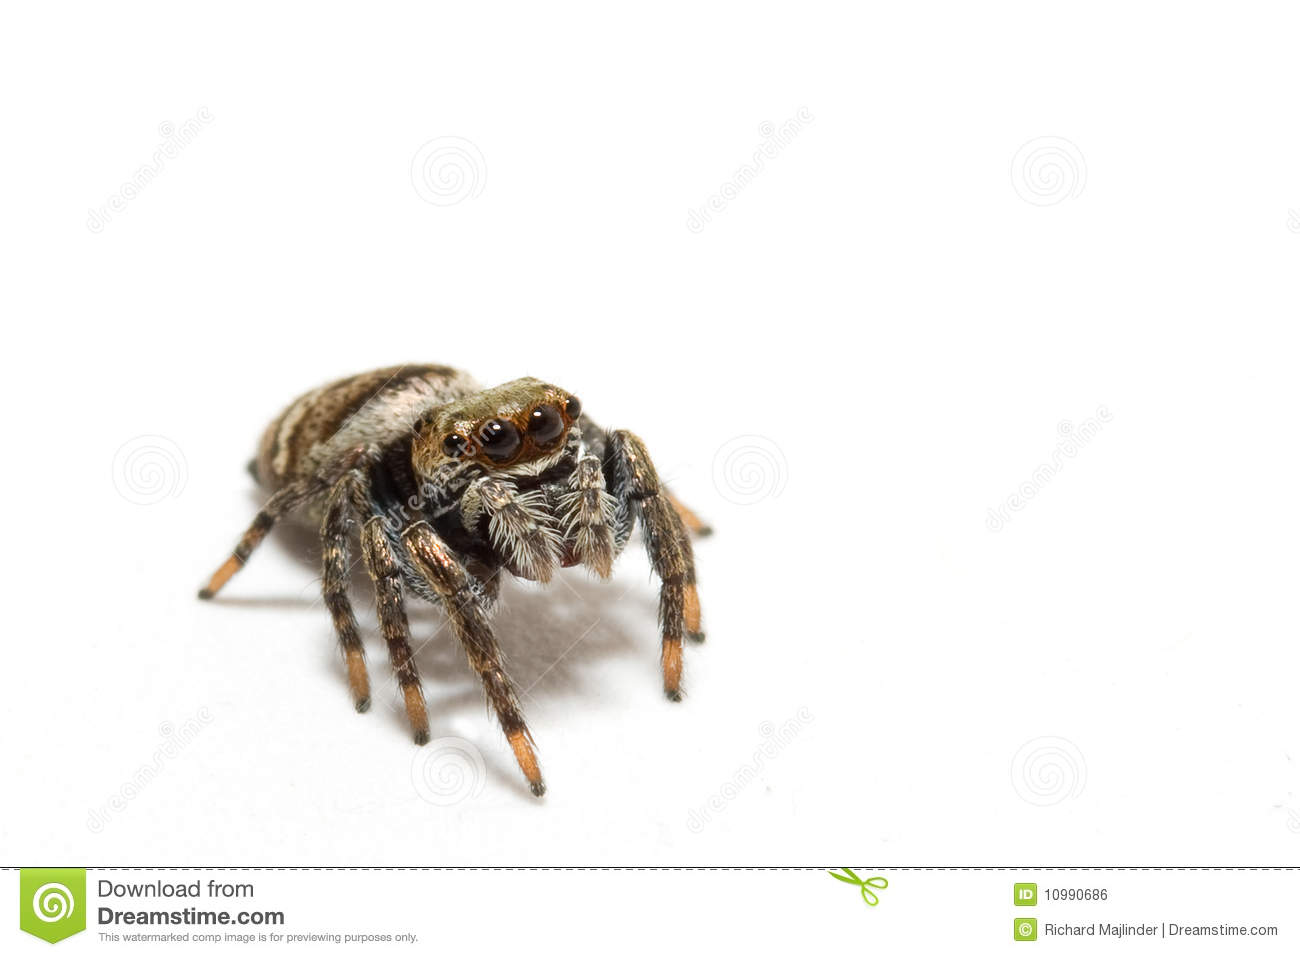 Jumping Spider clipart #9, Download drawings